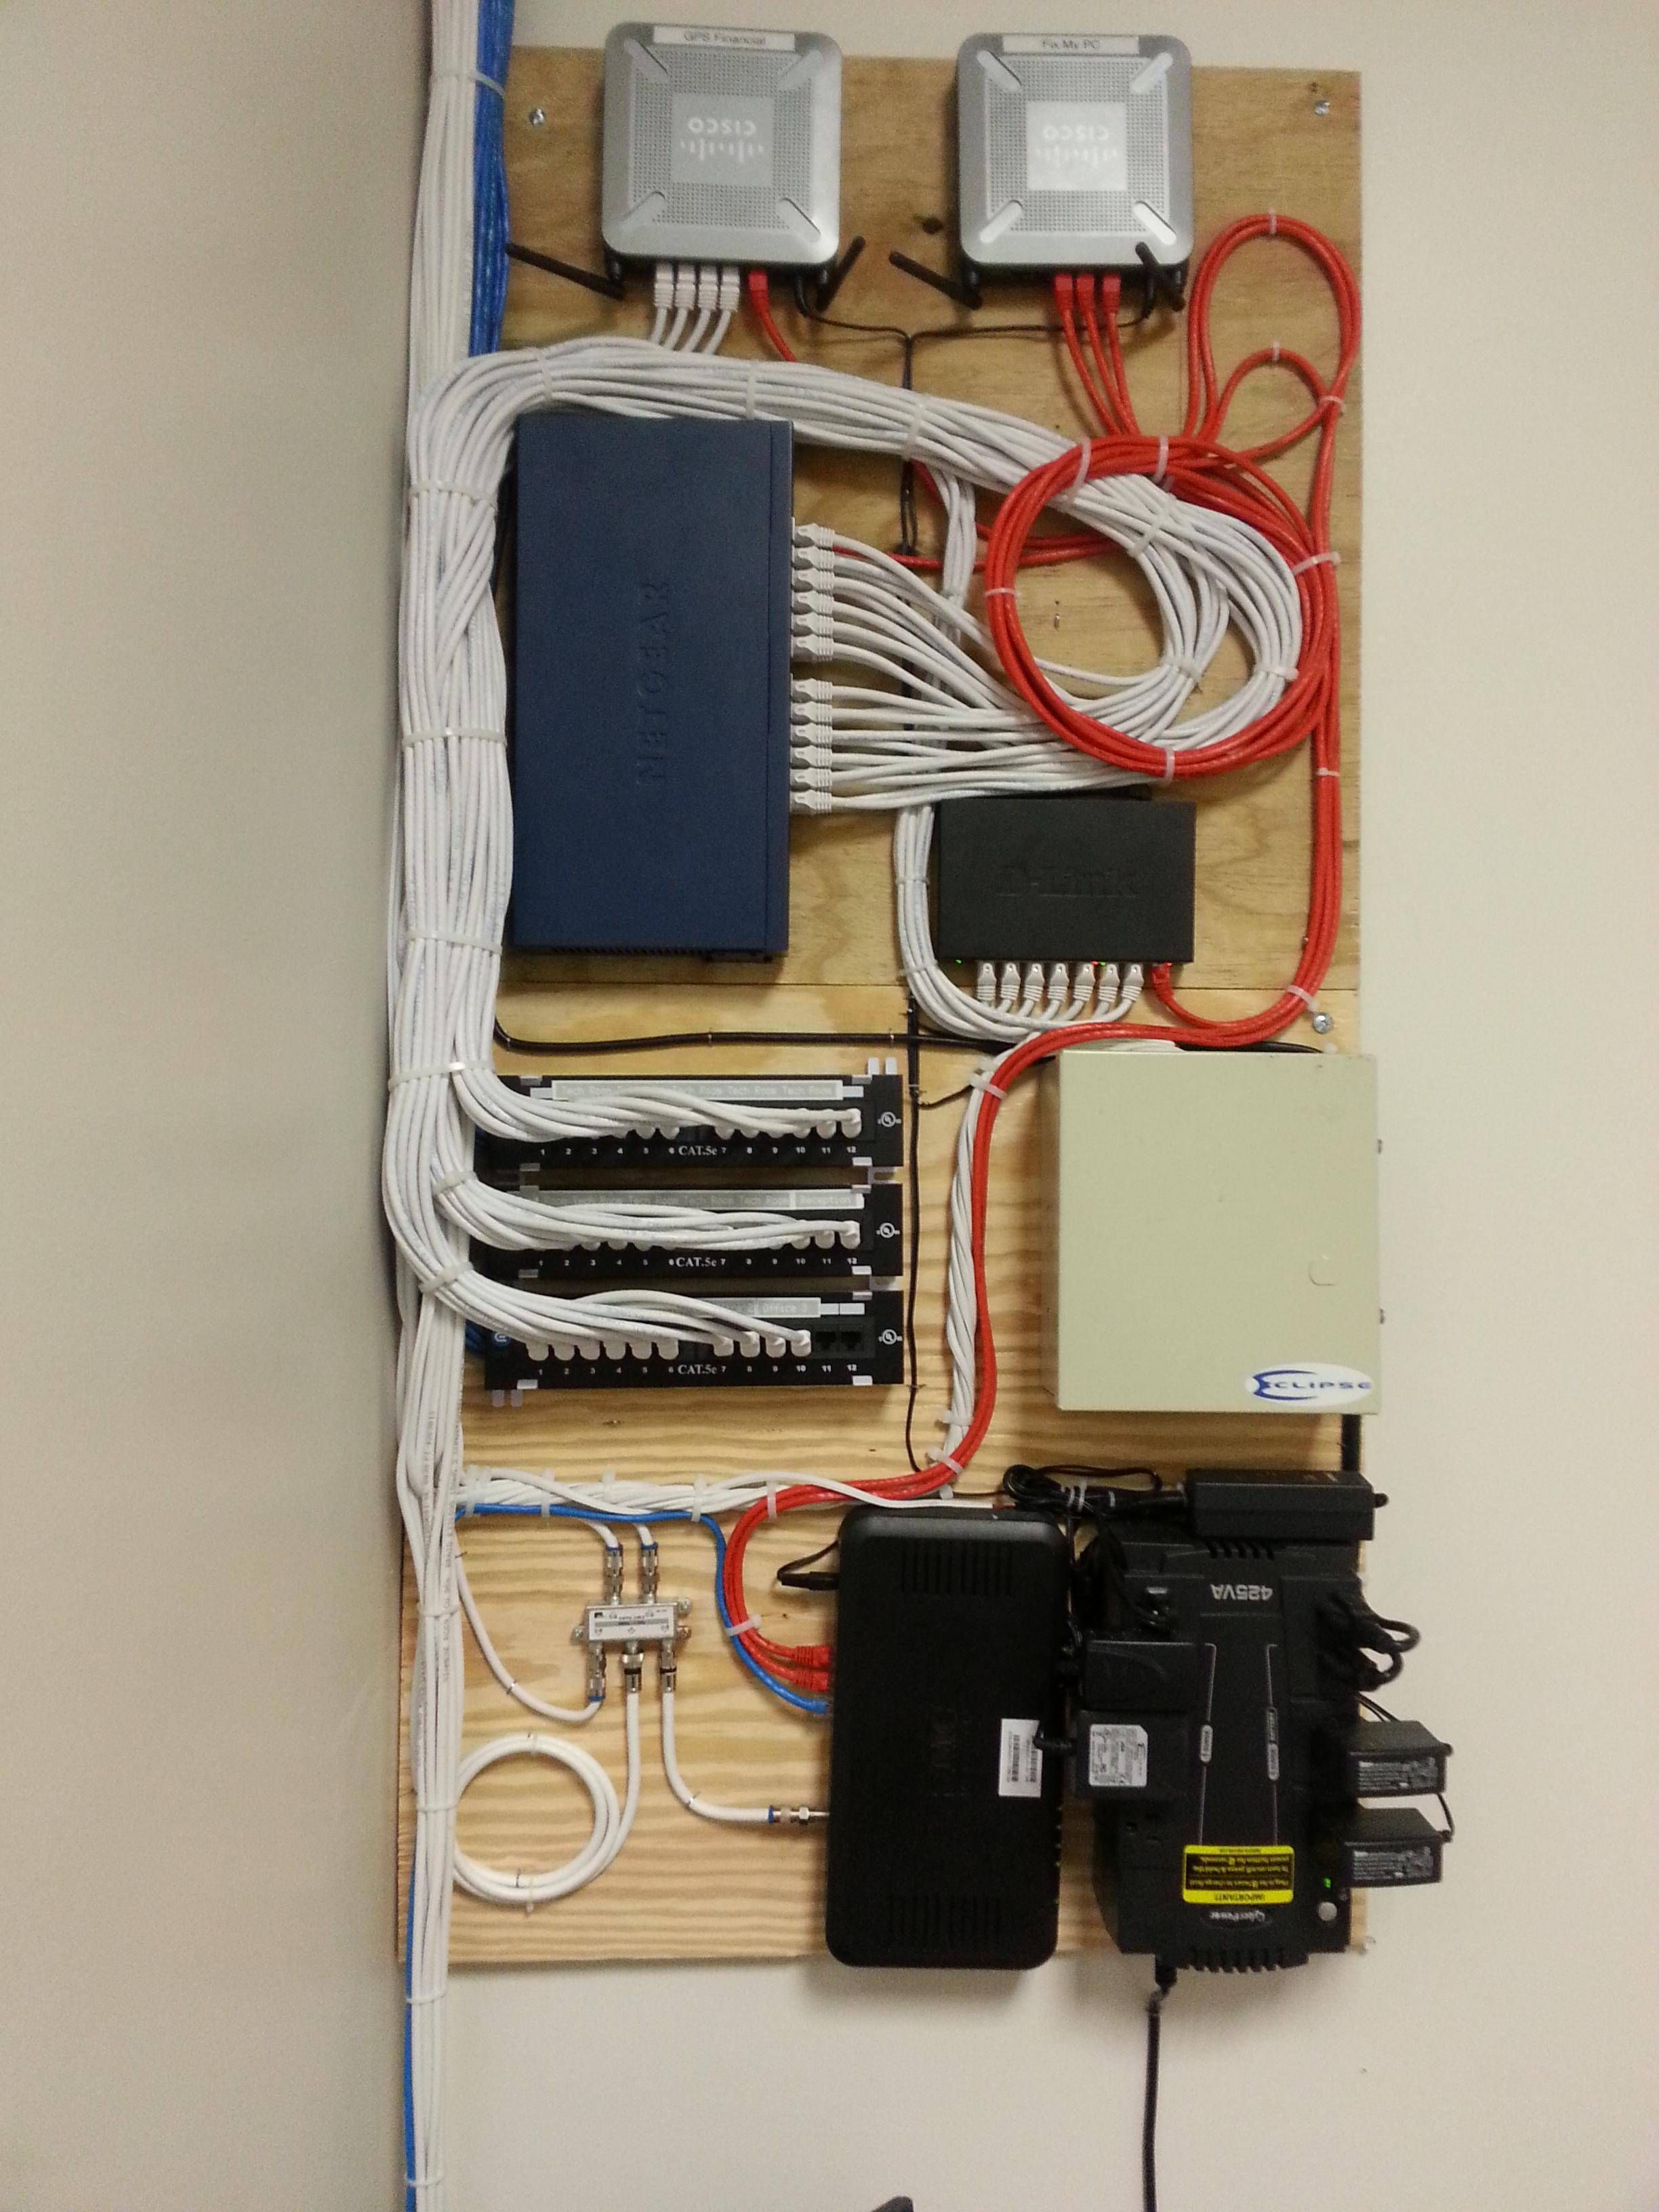 Diagram Of A Structured Cabling System Cable Management Cable Management Structured Wiring